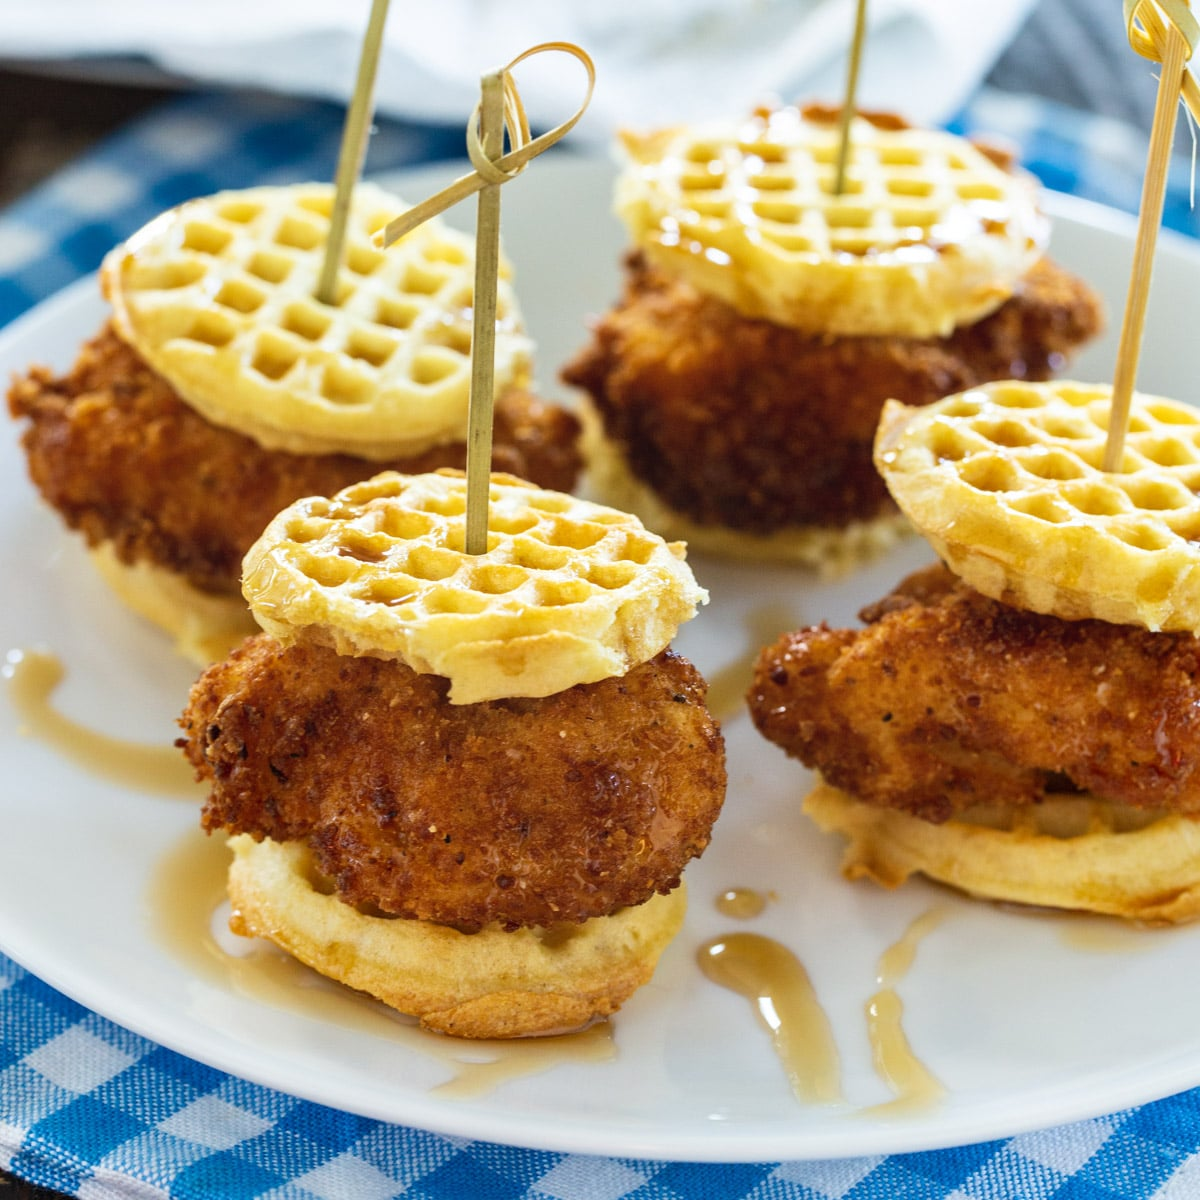 Four Chicken and Waffle Sliders on a plate.